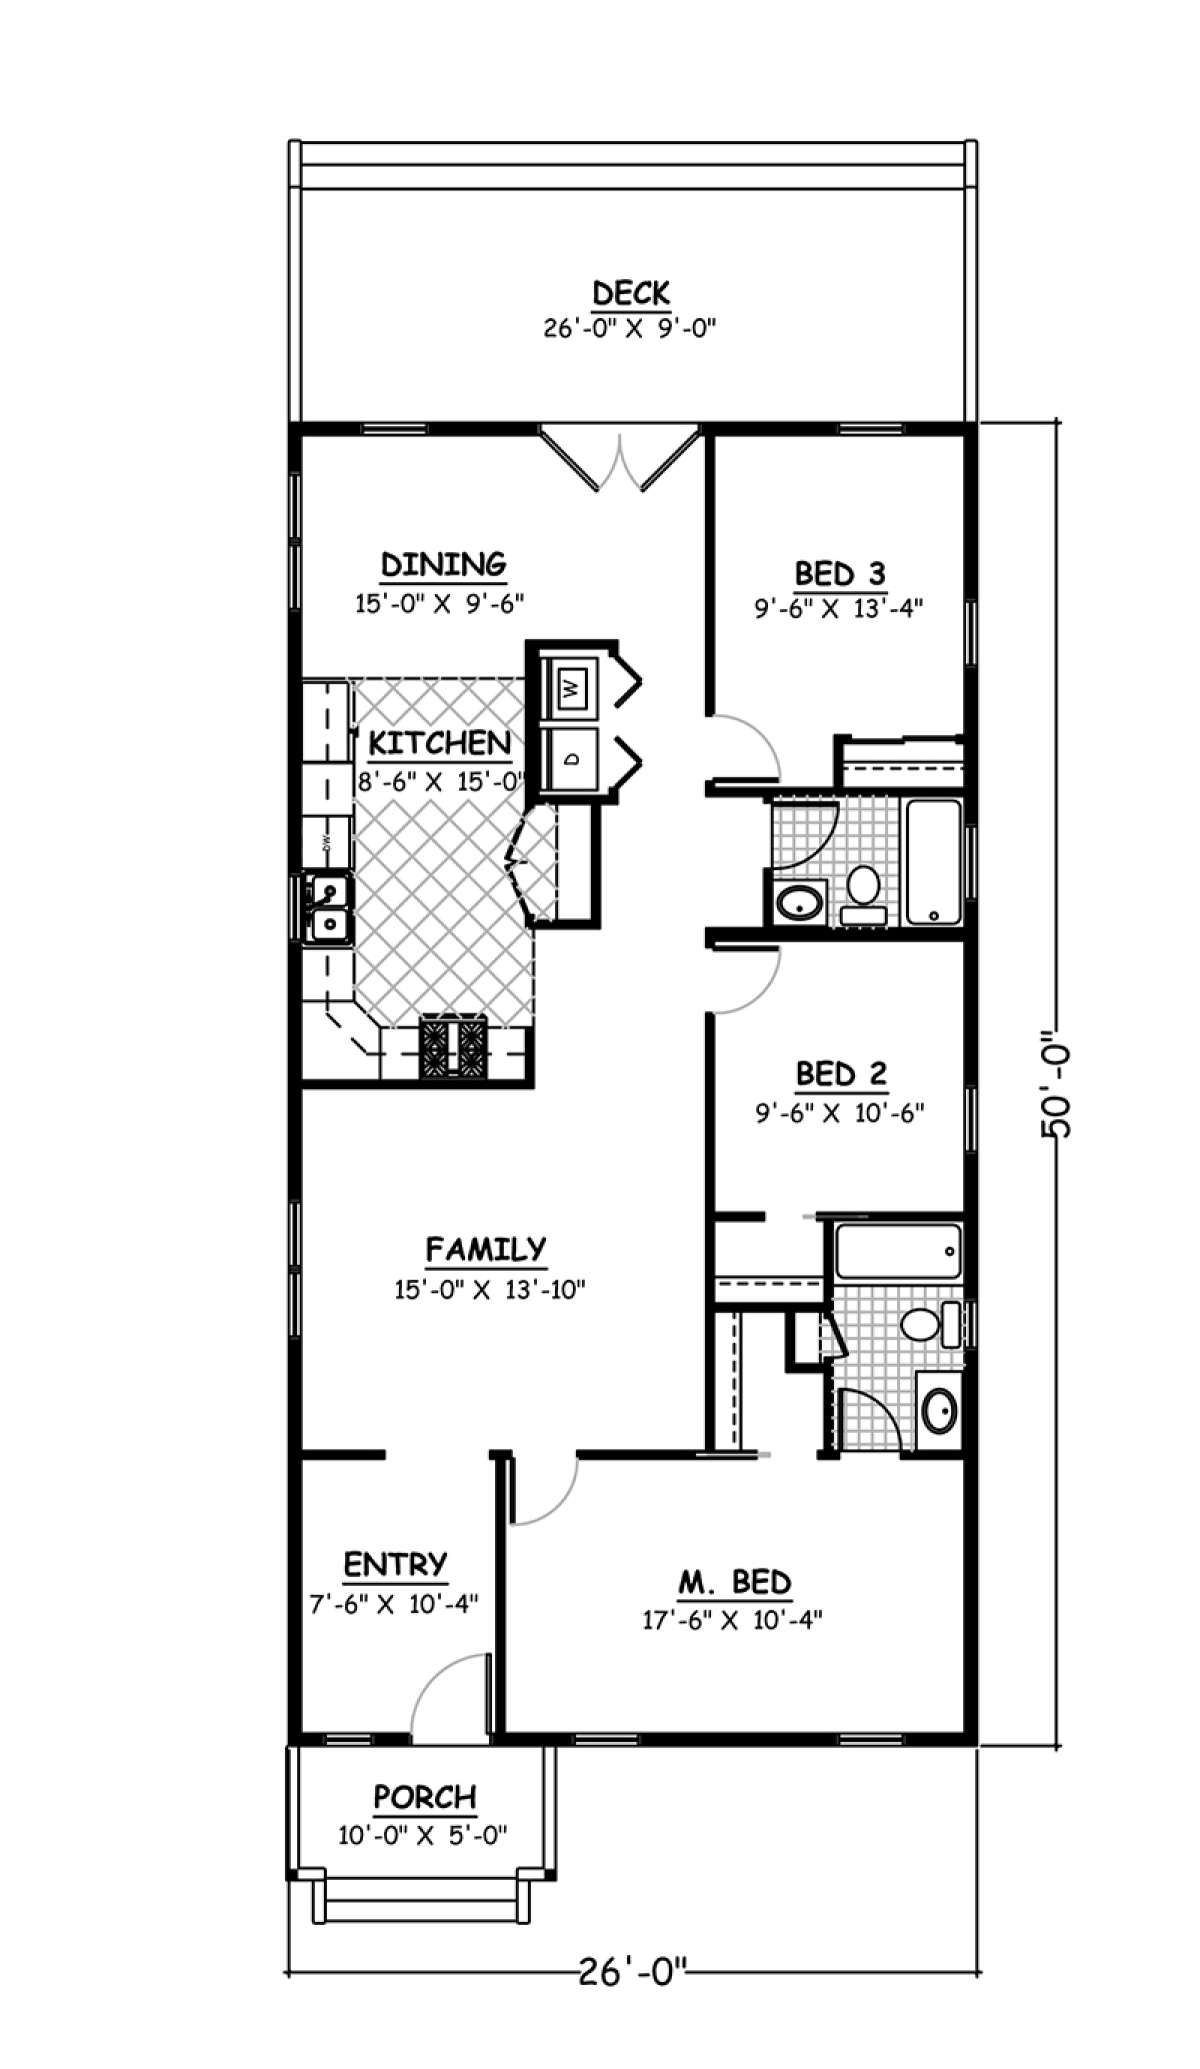 House Plan 526 00041 Narrow Lot Plan 1 300 Square Feet 3 Bedrooms 2 Bathrooms In 2021 Condo Floor Plans One Level House Plans Narrow House Plans